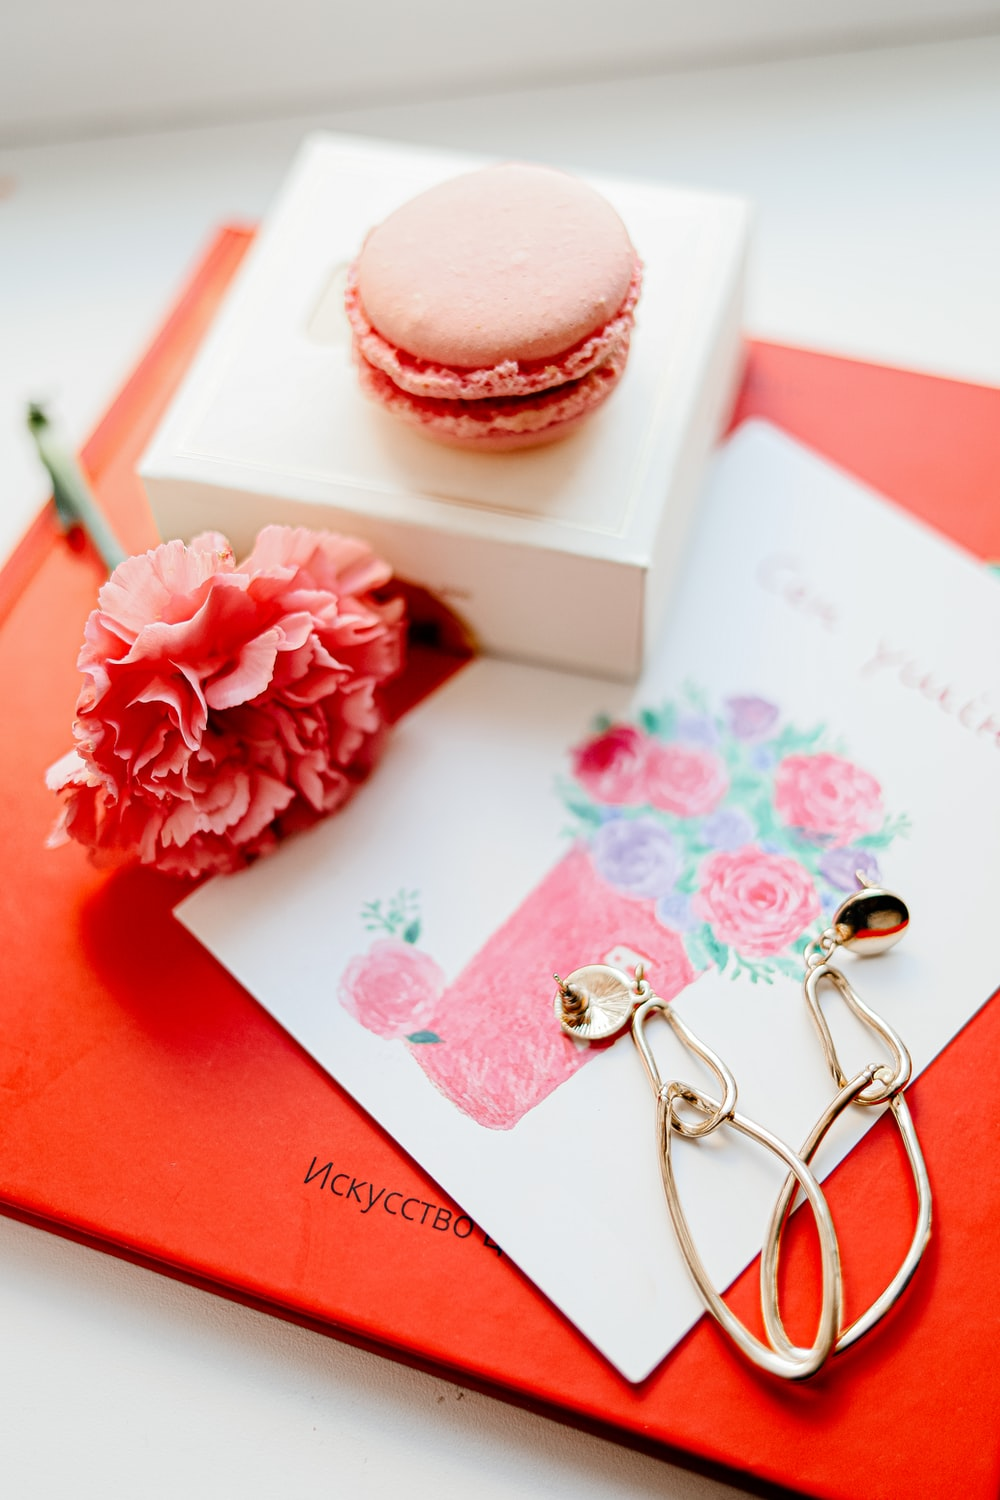 pink and white rose on white and red greeting card